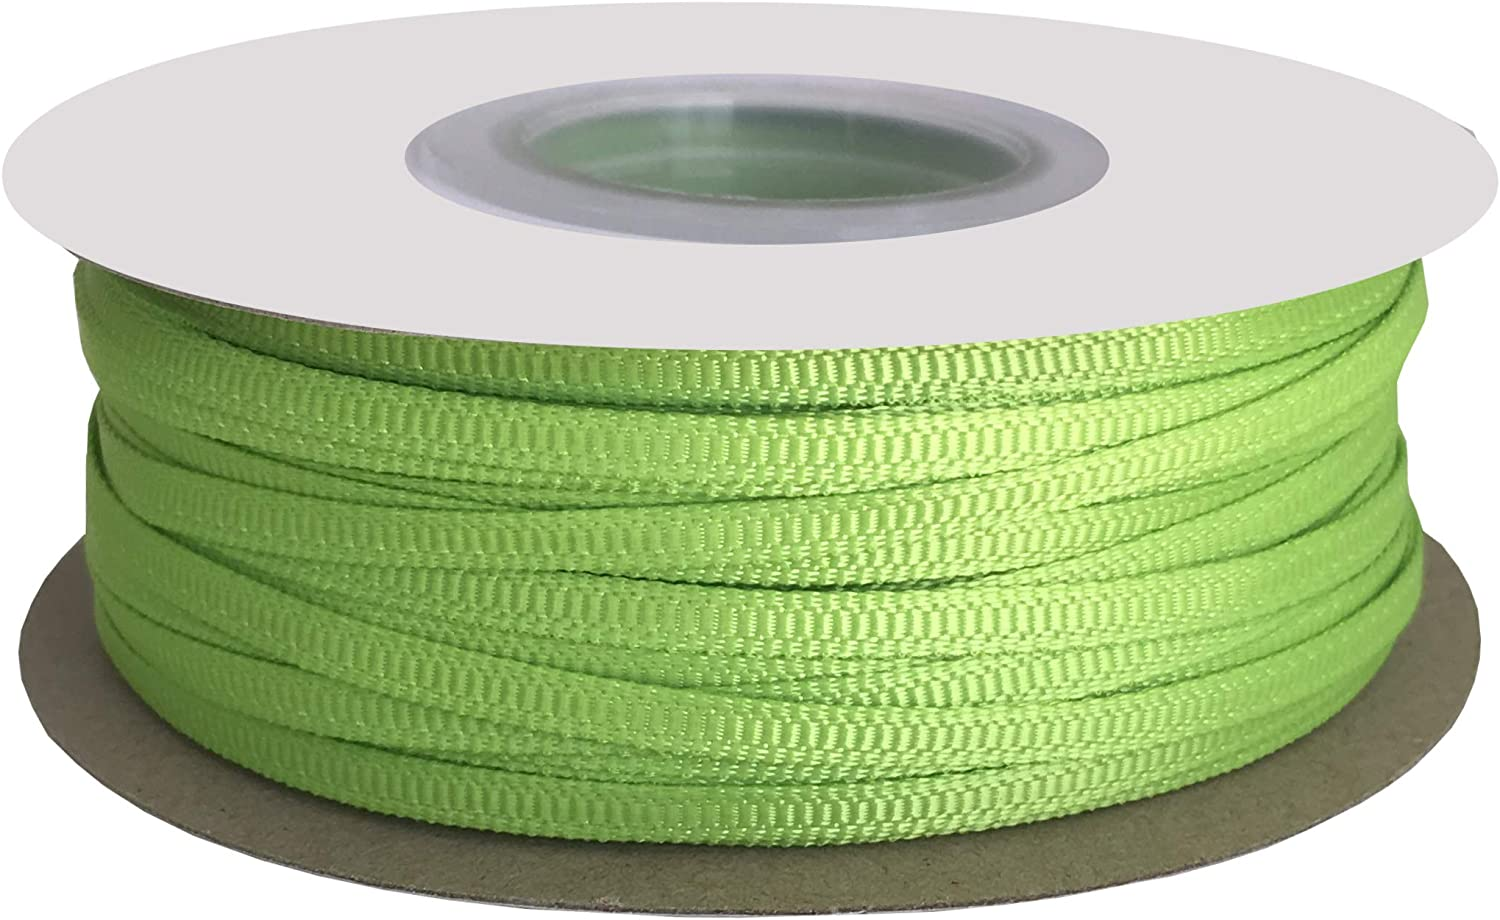 DUOQU 1/8 inch Wide Grosgrain Ribbon 100 Yards Roll Multiple Colors Apple Green